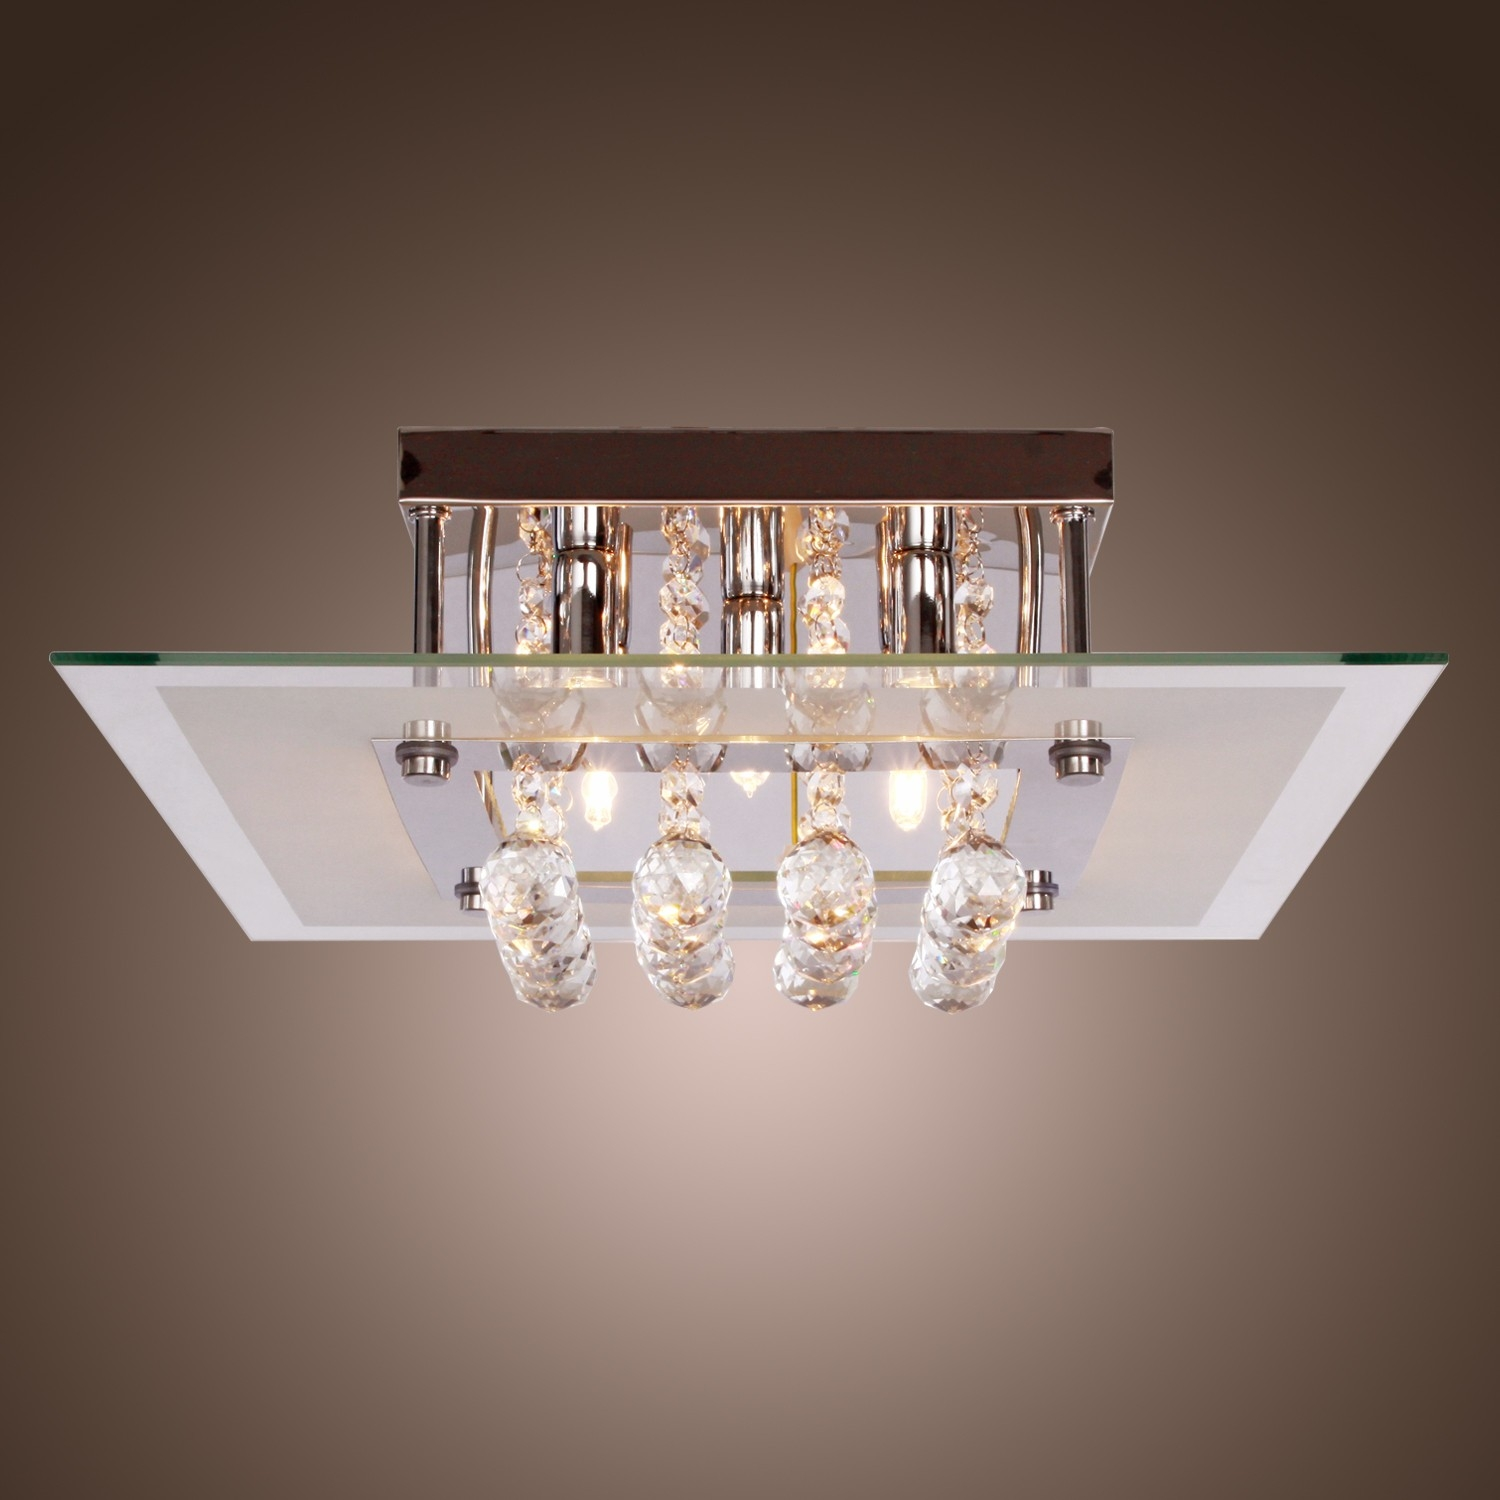 Comtemporary Crystal Drop Flush Mount Lights With 5 Lights In With Modern Light Chandelier (Image 2 of 15)